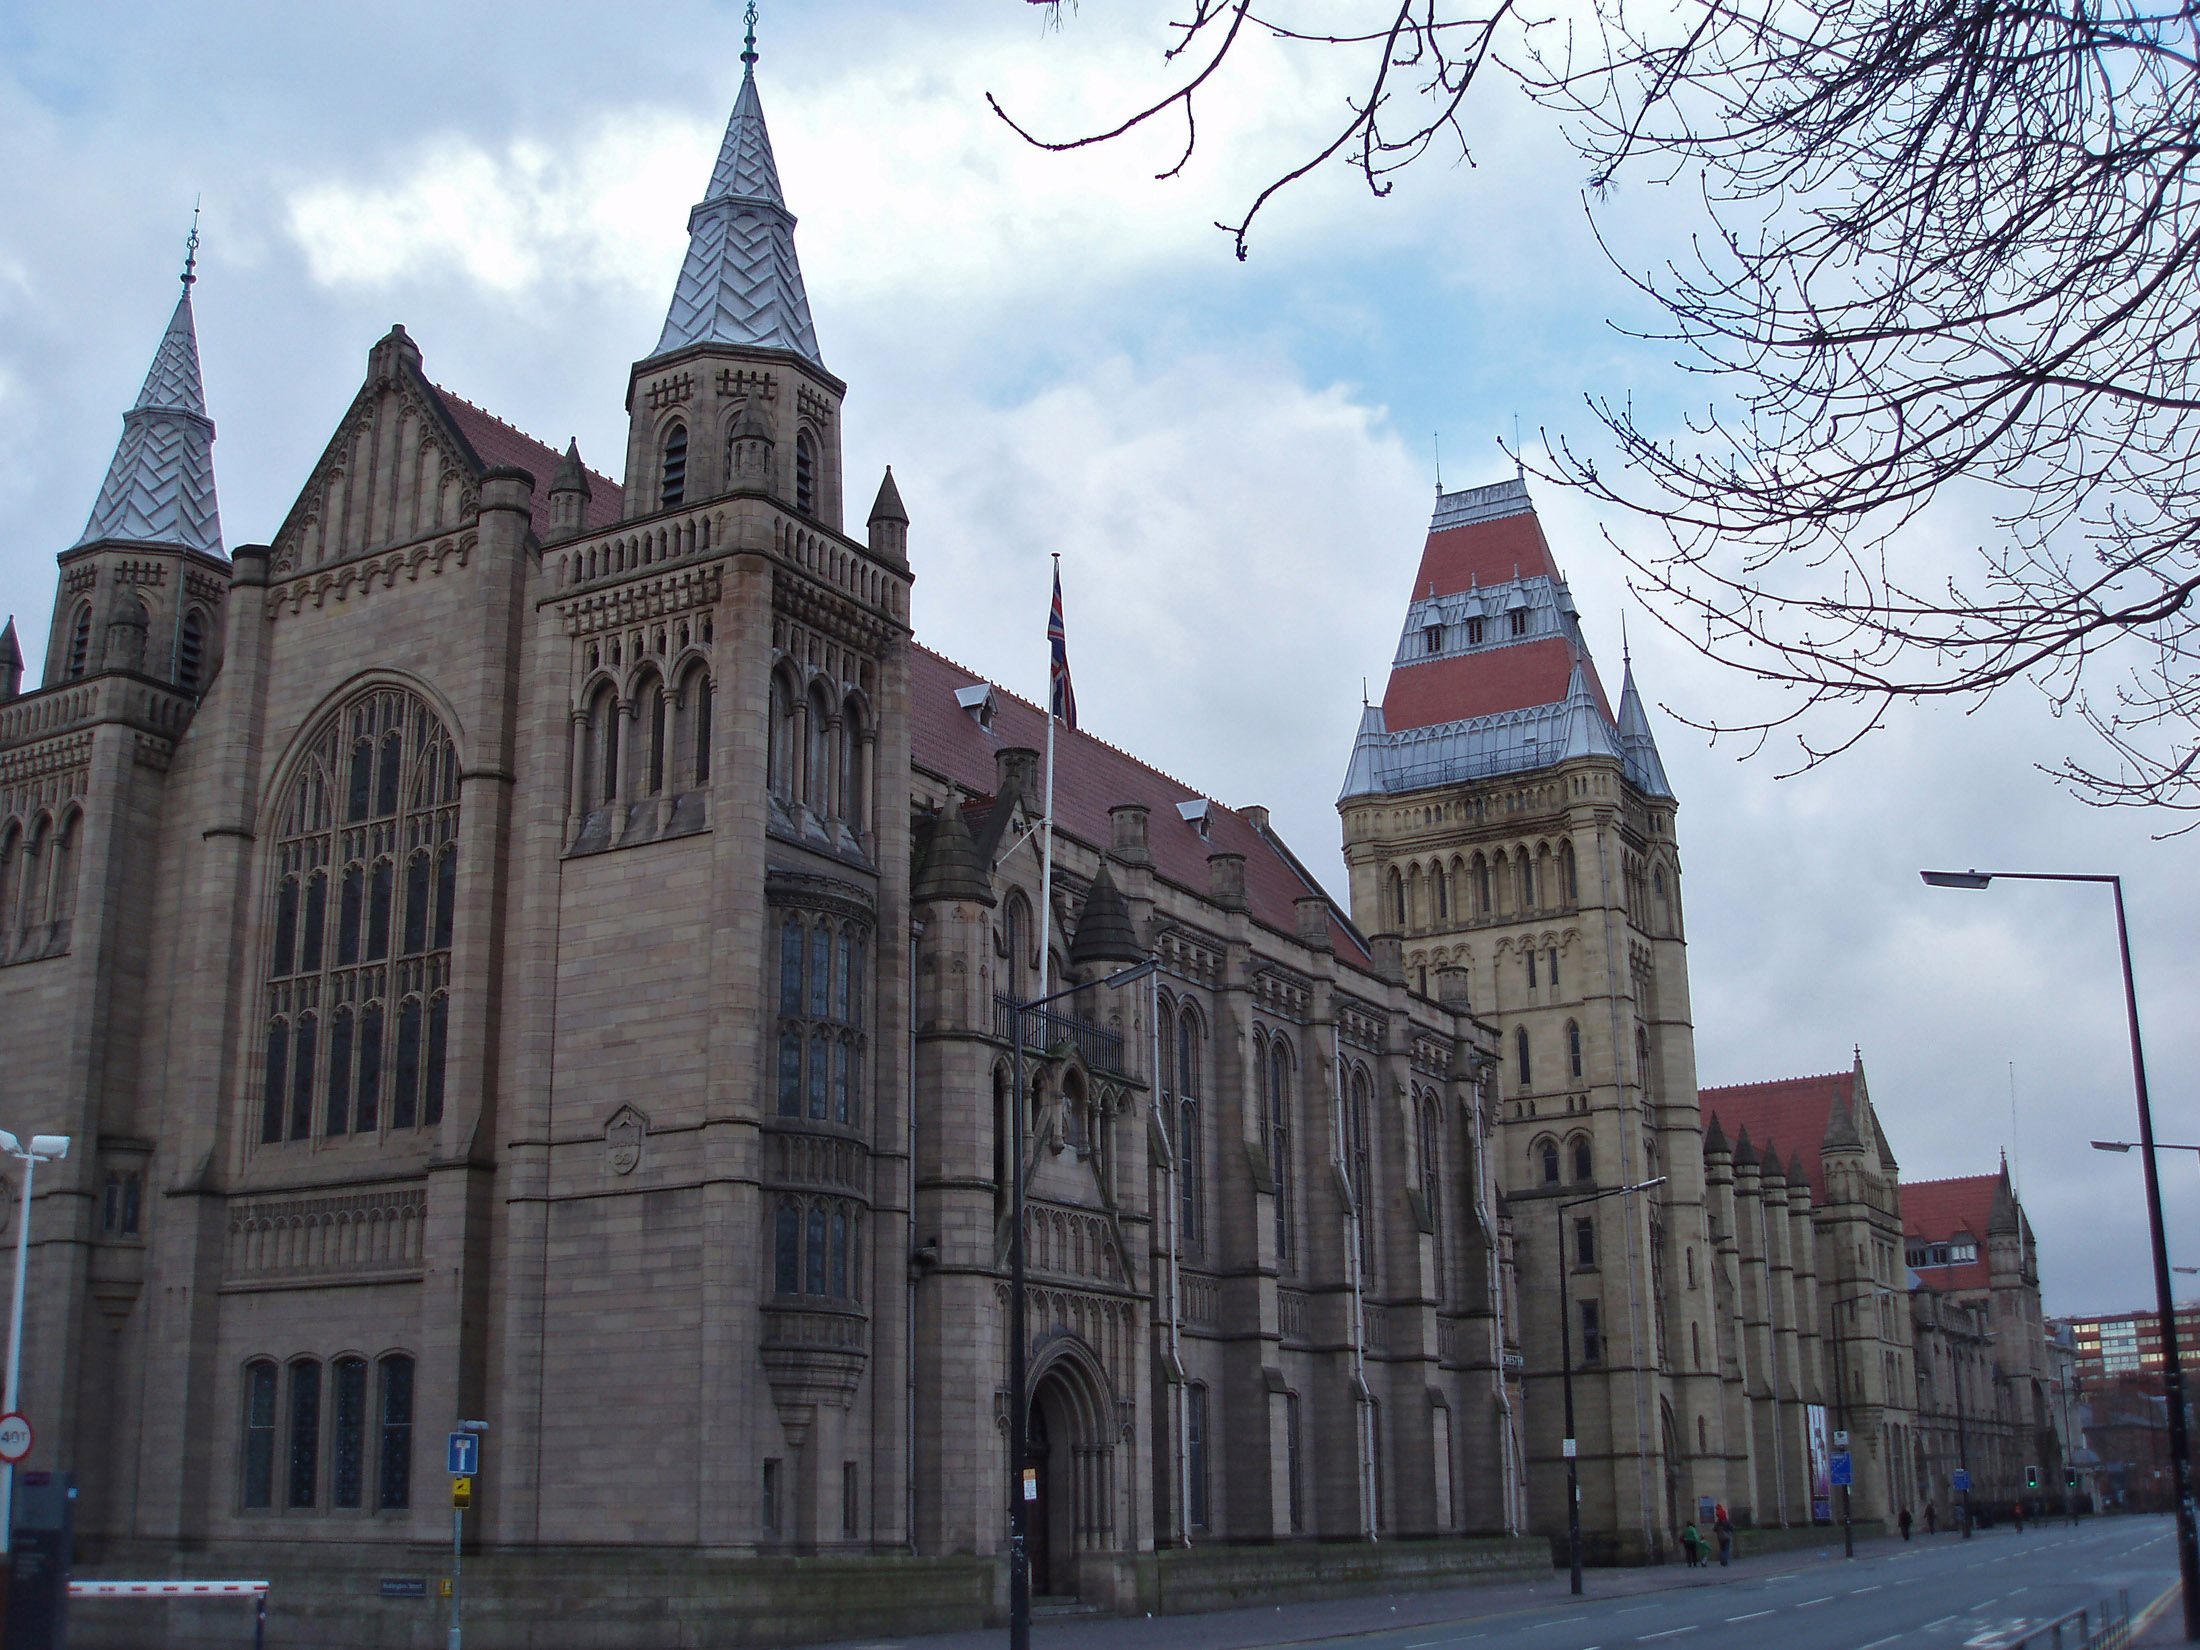 Exterior View of the historic Manchester University Building, a Large Research Center at Manchester, England.